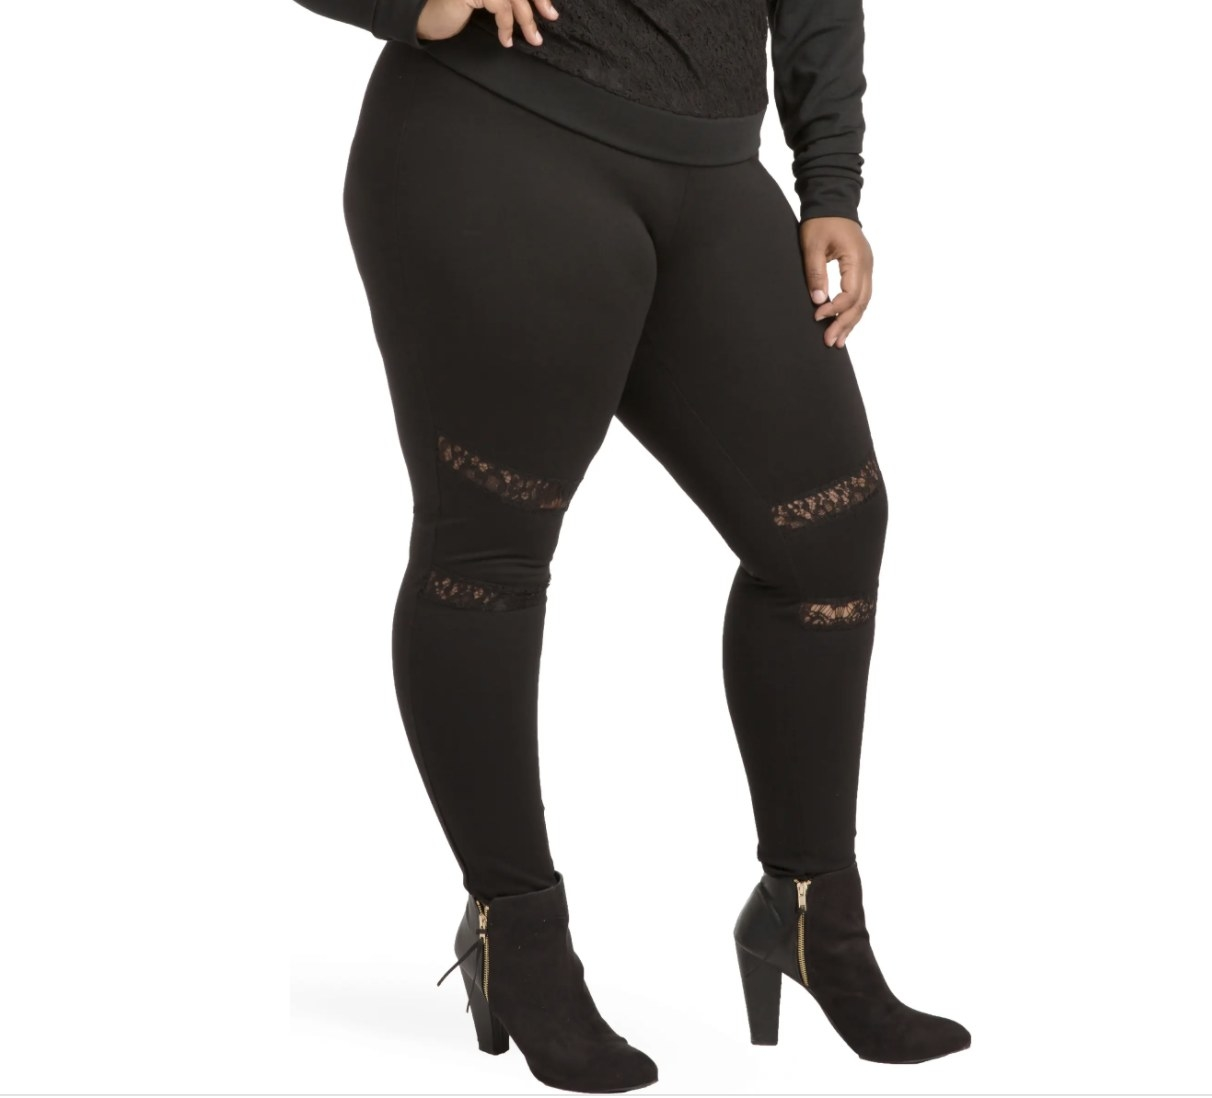 Model is wearing black leggings and black booties